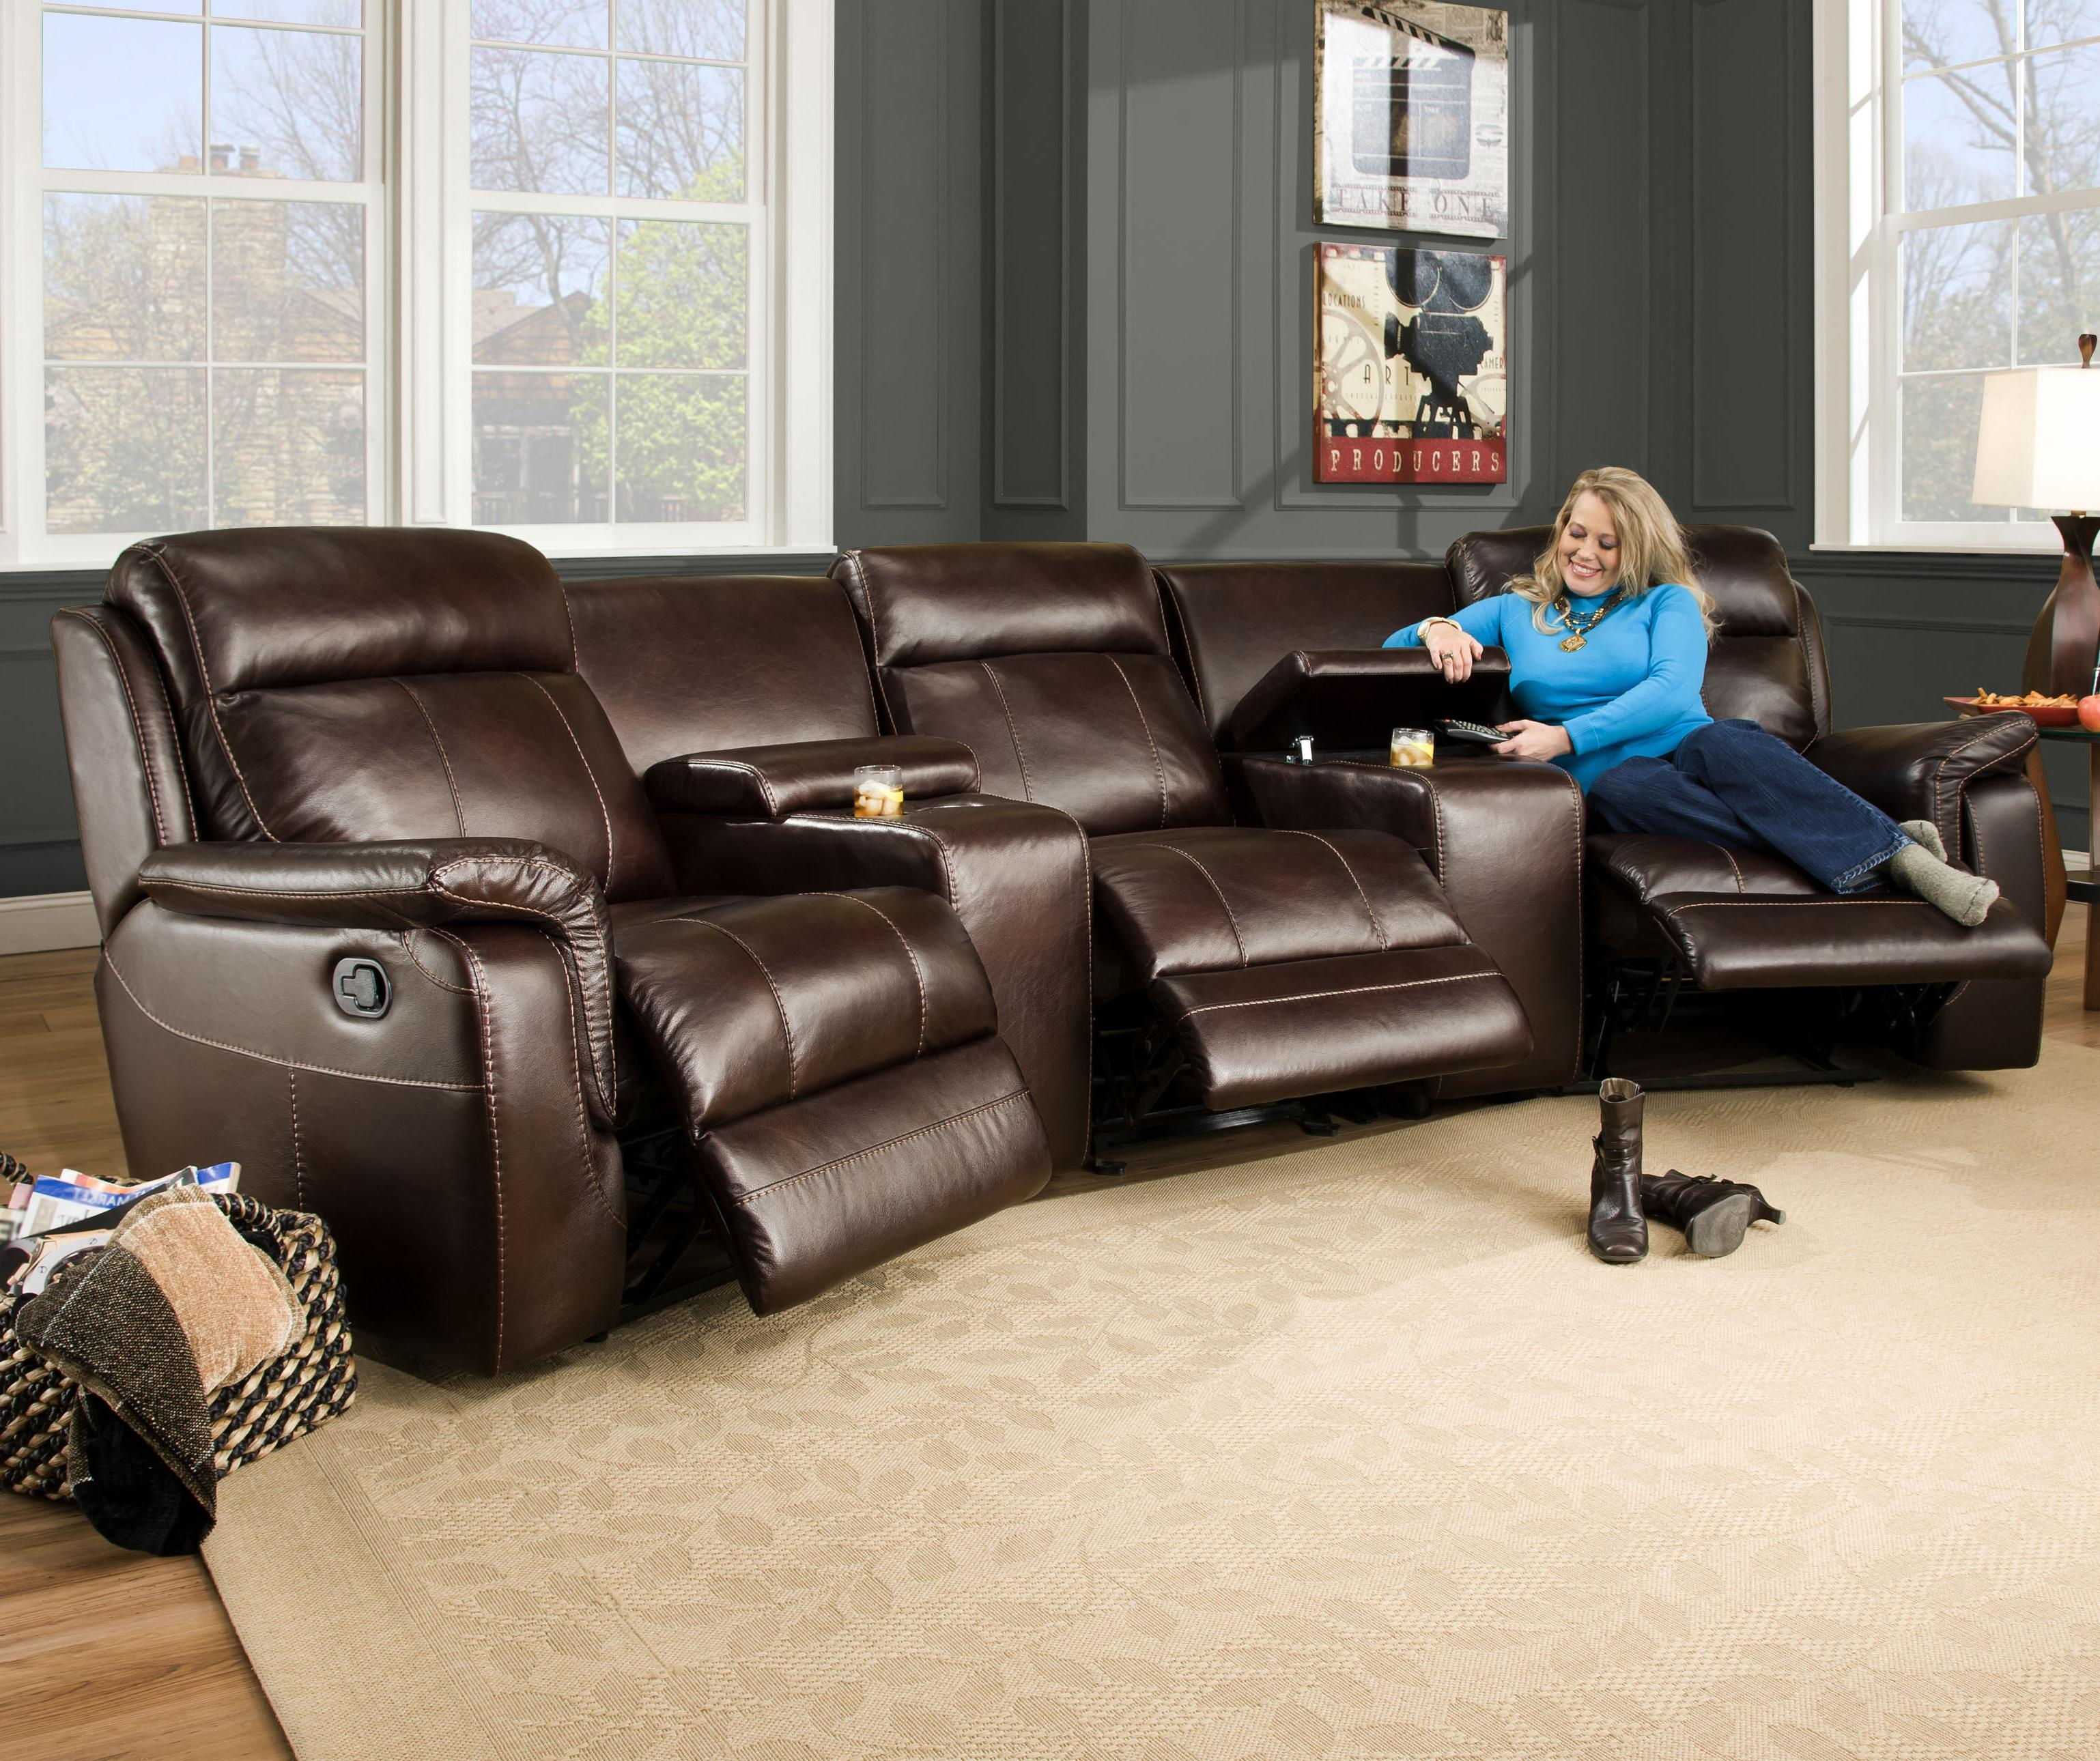 Corinthian 862 Sectional Sofa with 5 Seats (2 are Wall Away Recliners) and 2 Cup Holders - J u0026 J Furniture - Sofa Sectional Mobile Daphne Tillmans Corner ... & Corinthian 862 Sectional Sofa with 5 Seats (2 are Wall Away ... islam-shia.org